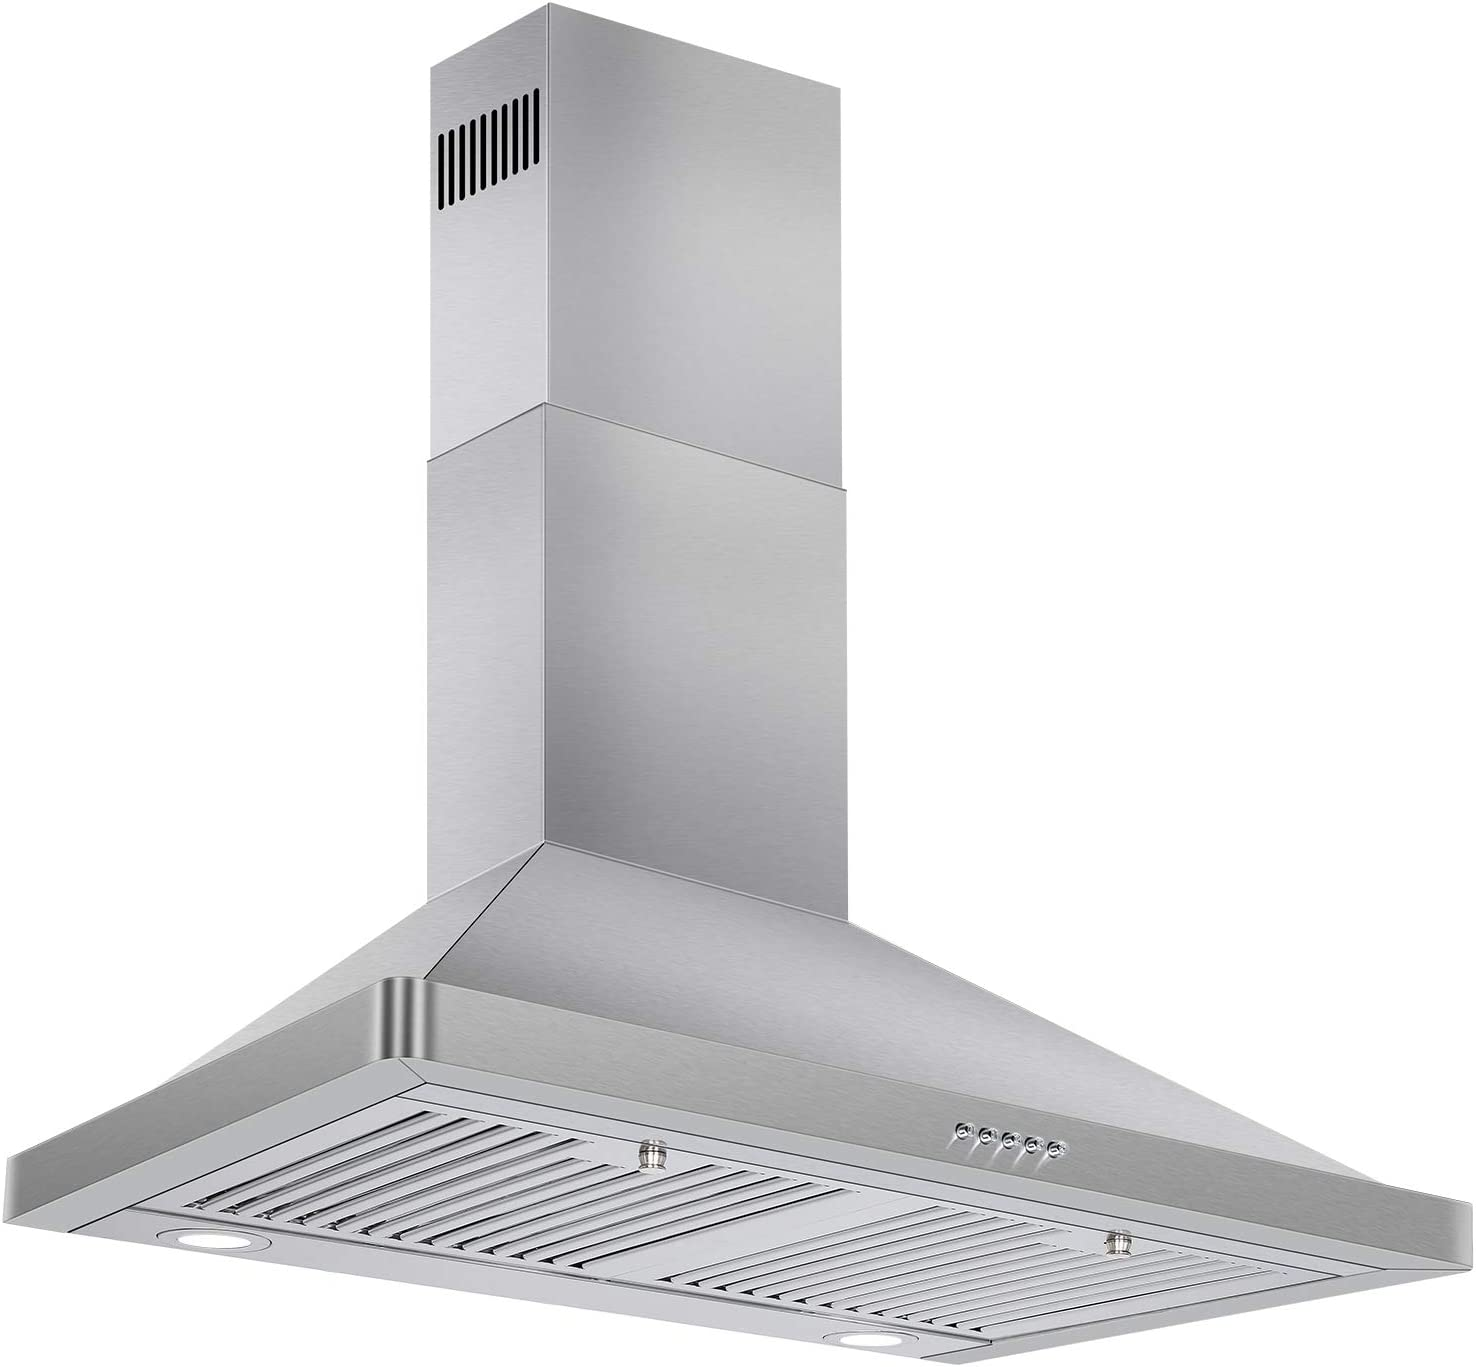 Permanent Filters LED Lights 3-Speed Exhaust Fan 30in Kitchen Hood with 900 CFM Efficient Airflow Chimney-Style Stove Vent in Stainless Steel Hykolity Wall Mount Range Hood Ducted